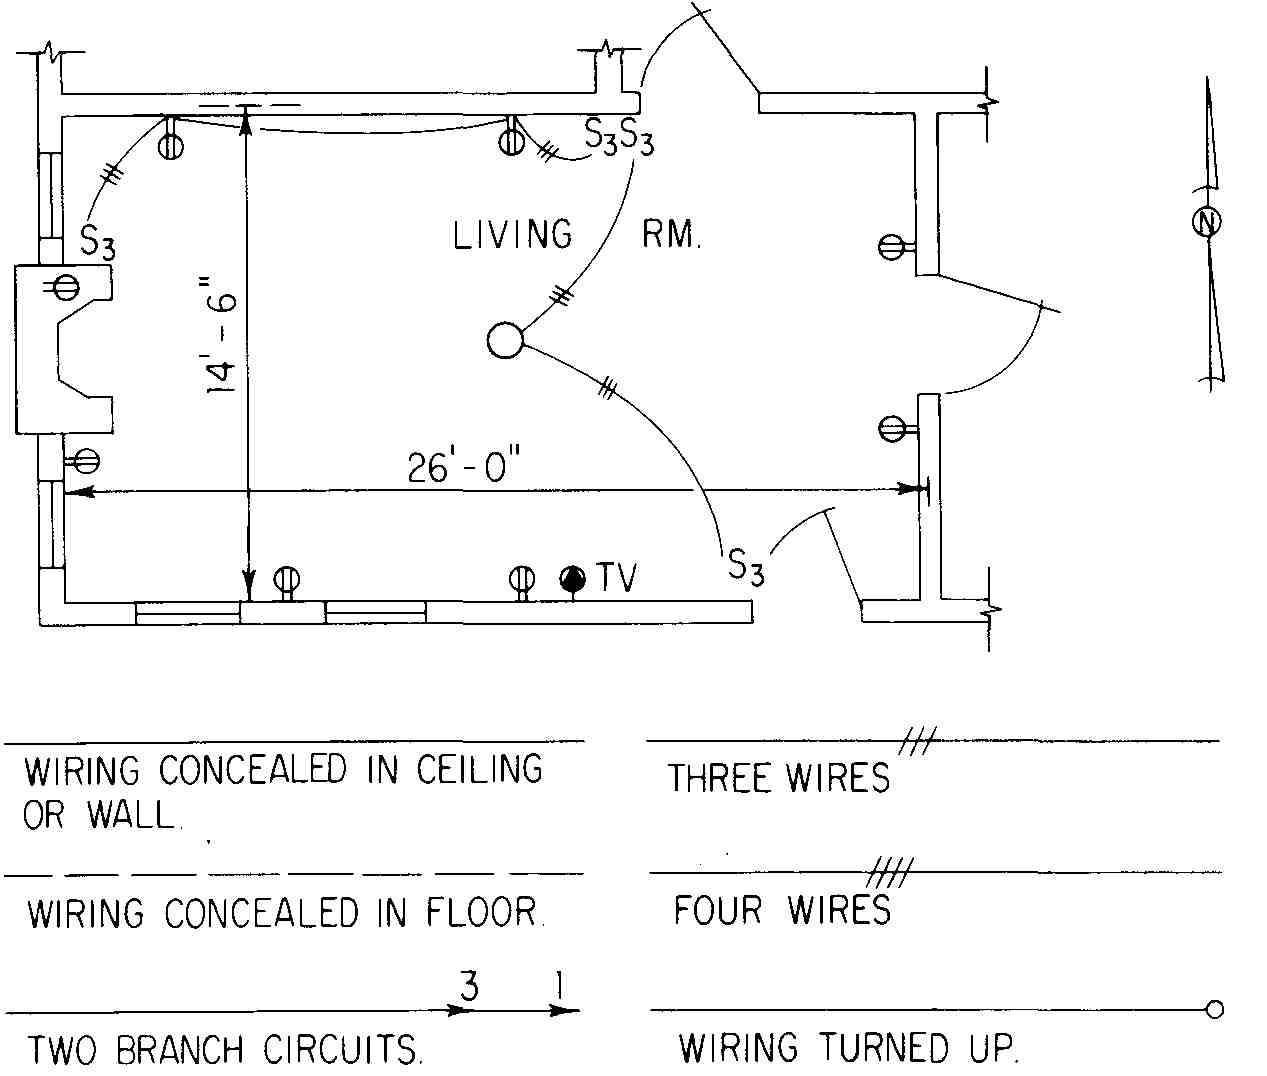 Electrical plan 3 way switch wiring diagrams schematics electrical drawing for architectural plans electrical plan 3 way switch 9 electrical plan 3 way switch malvernweather Image collections